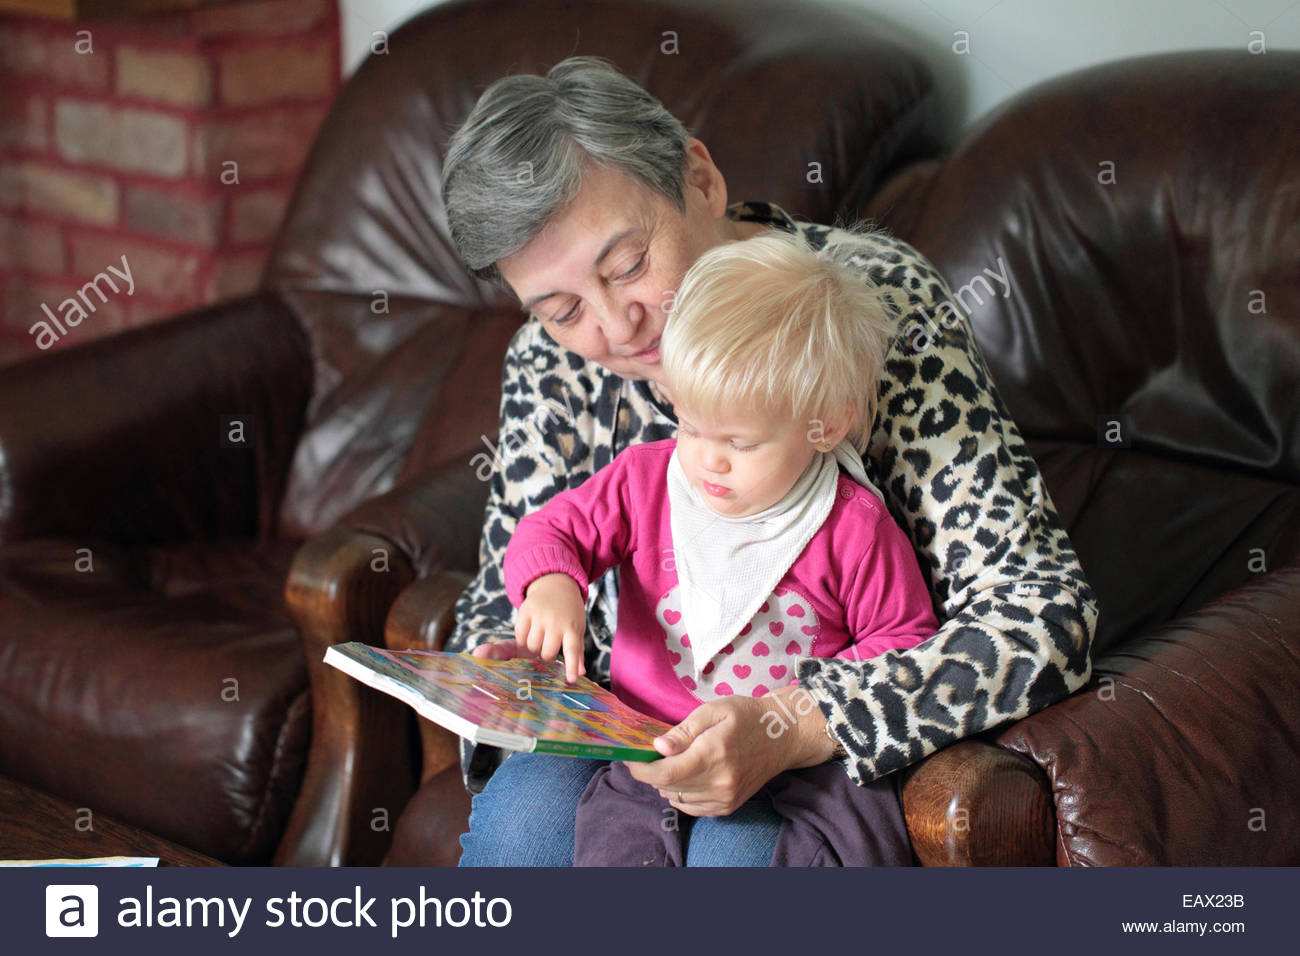 Portrait of a seventeen-month-old baby girl in her grandmother's lap, with a book. - Stock Image